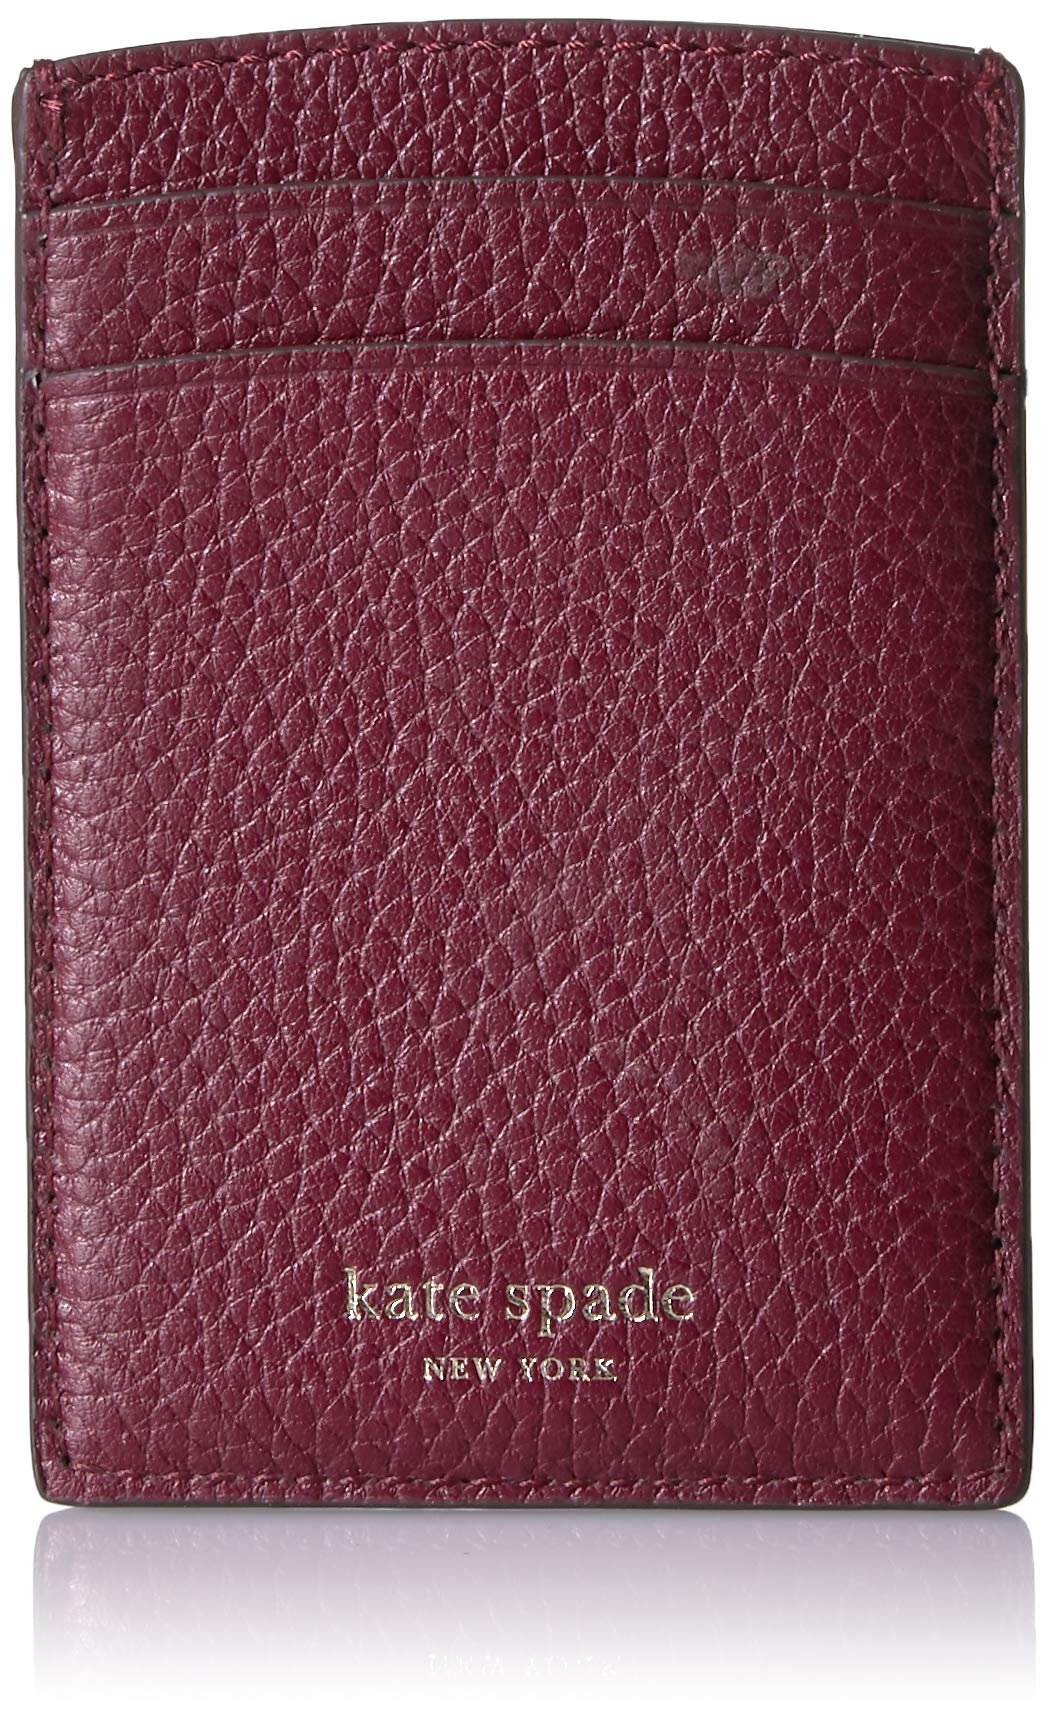 Kate Spade New York Women's Polly Card Holder Cherrywood One Size by Kate Spade New York